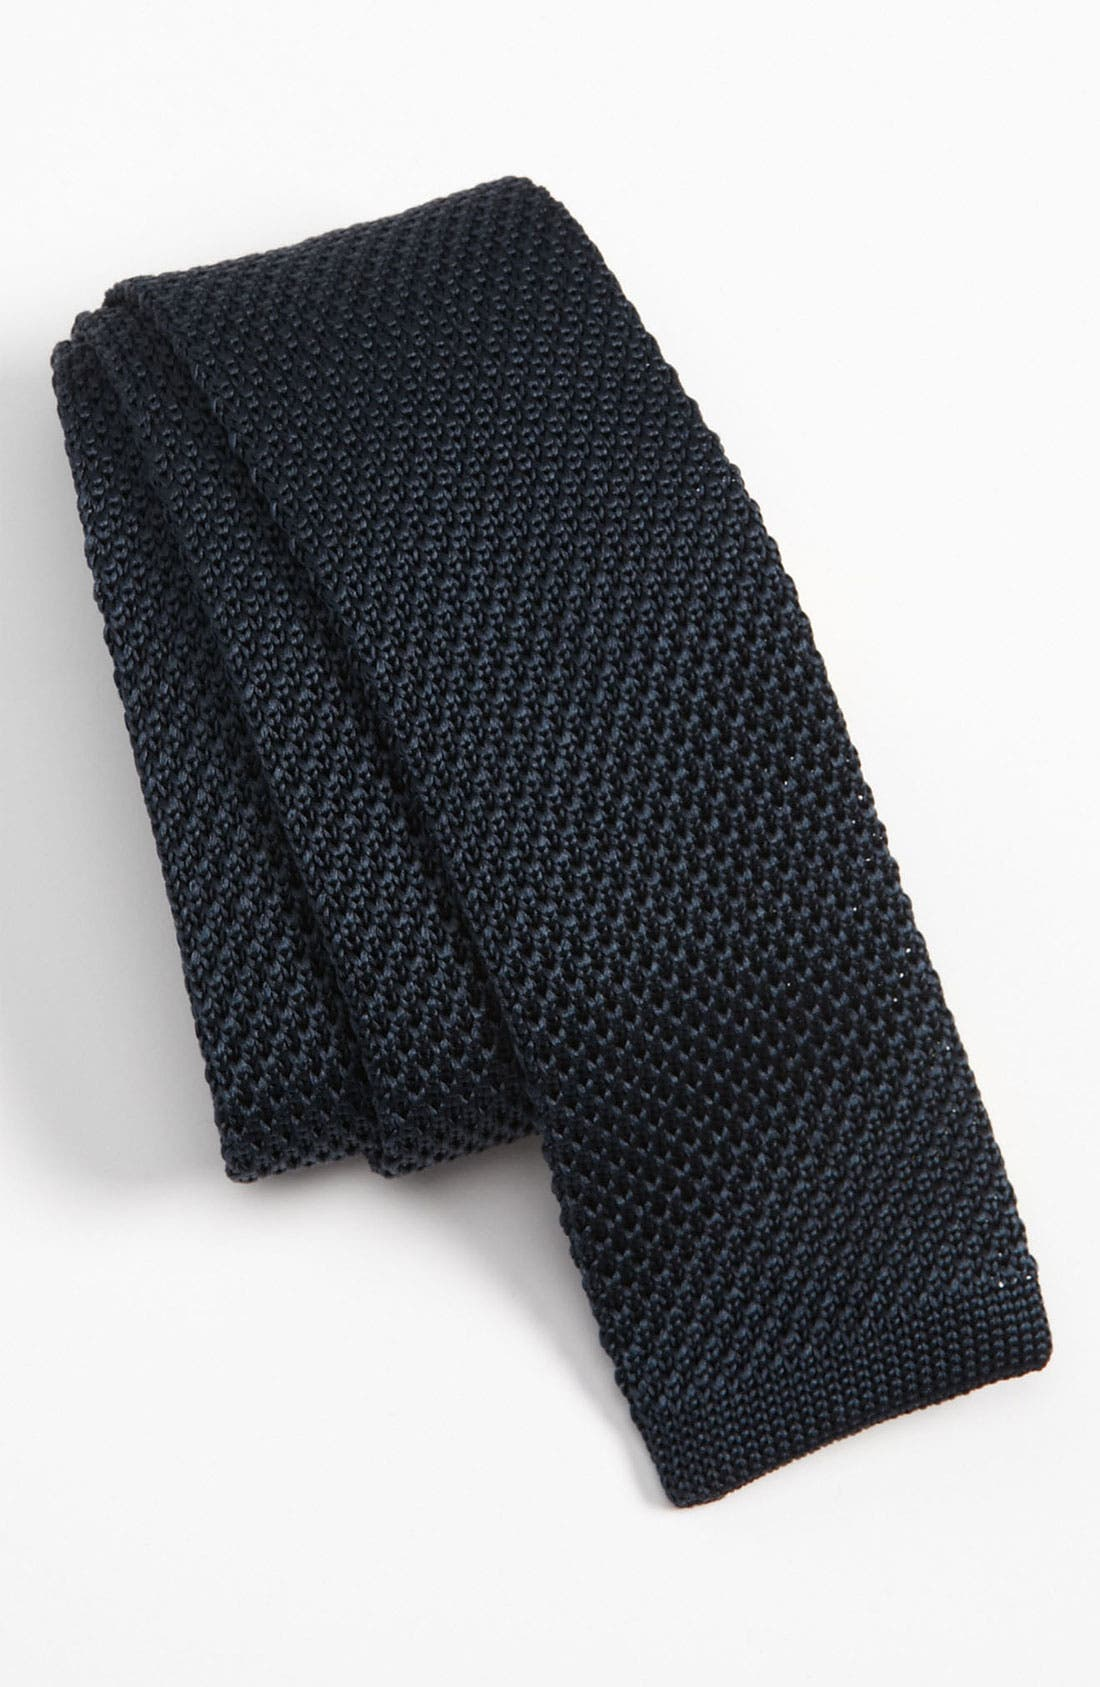 Alternate Image 1 Selected - The Tie Bar Knit Silk Tie